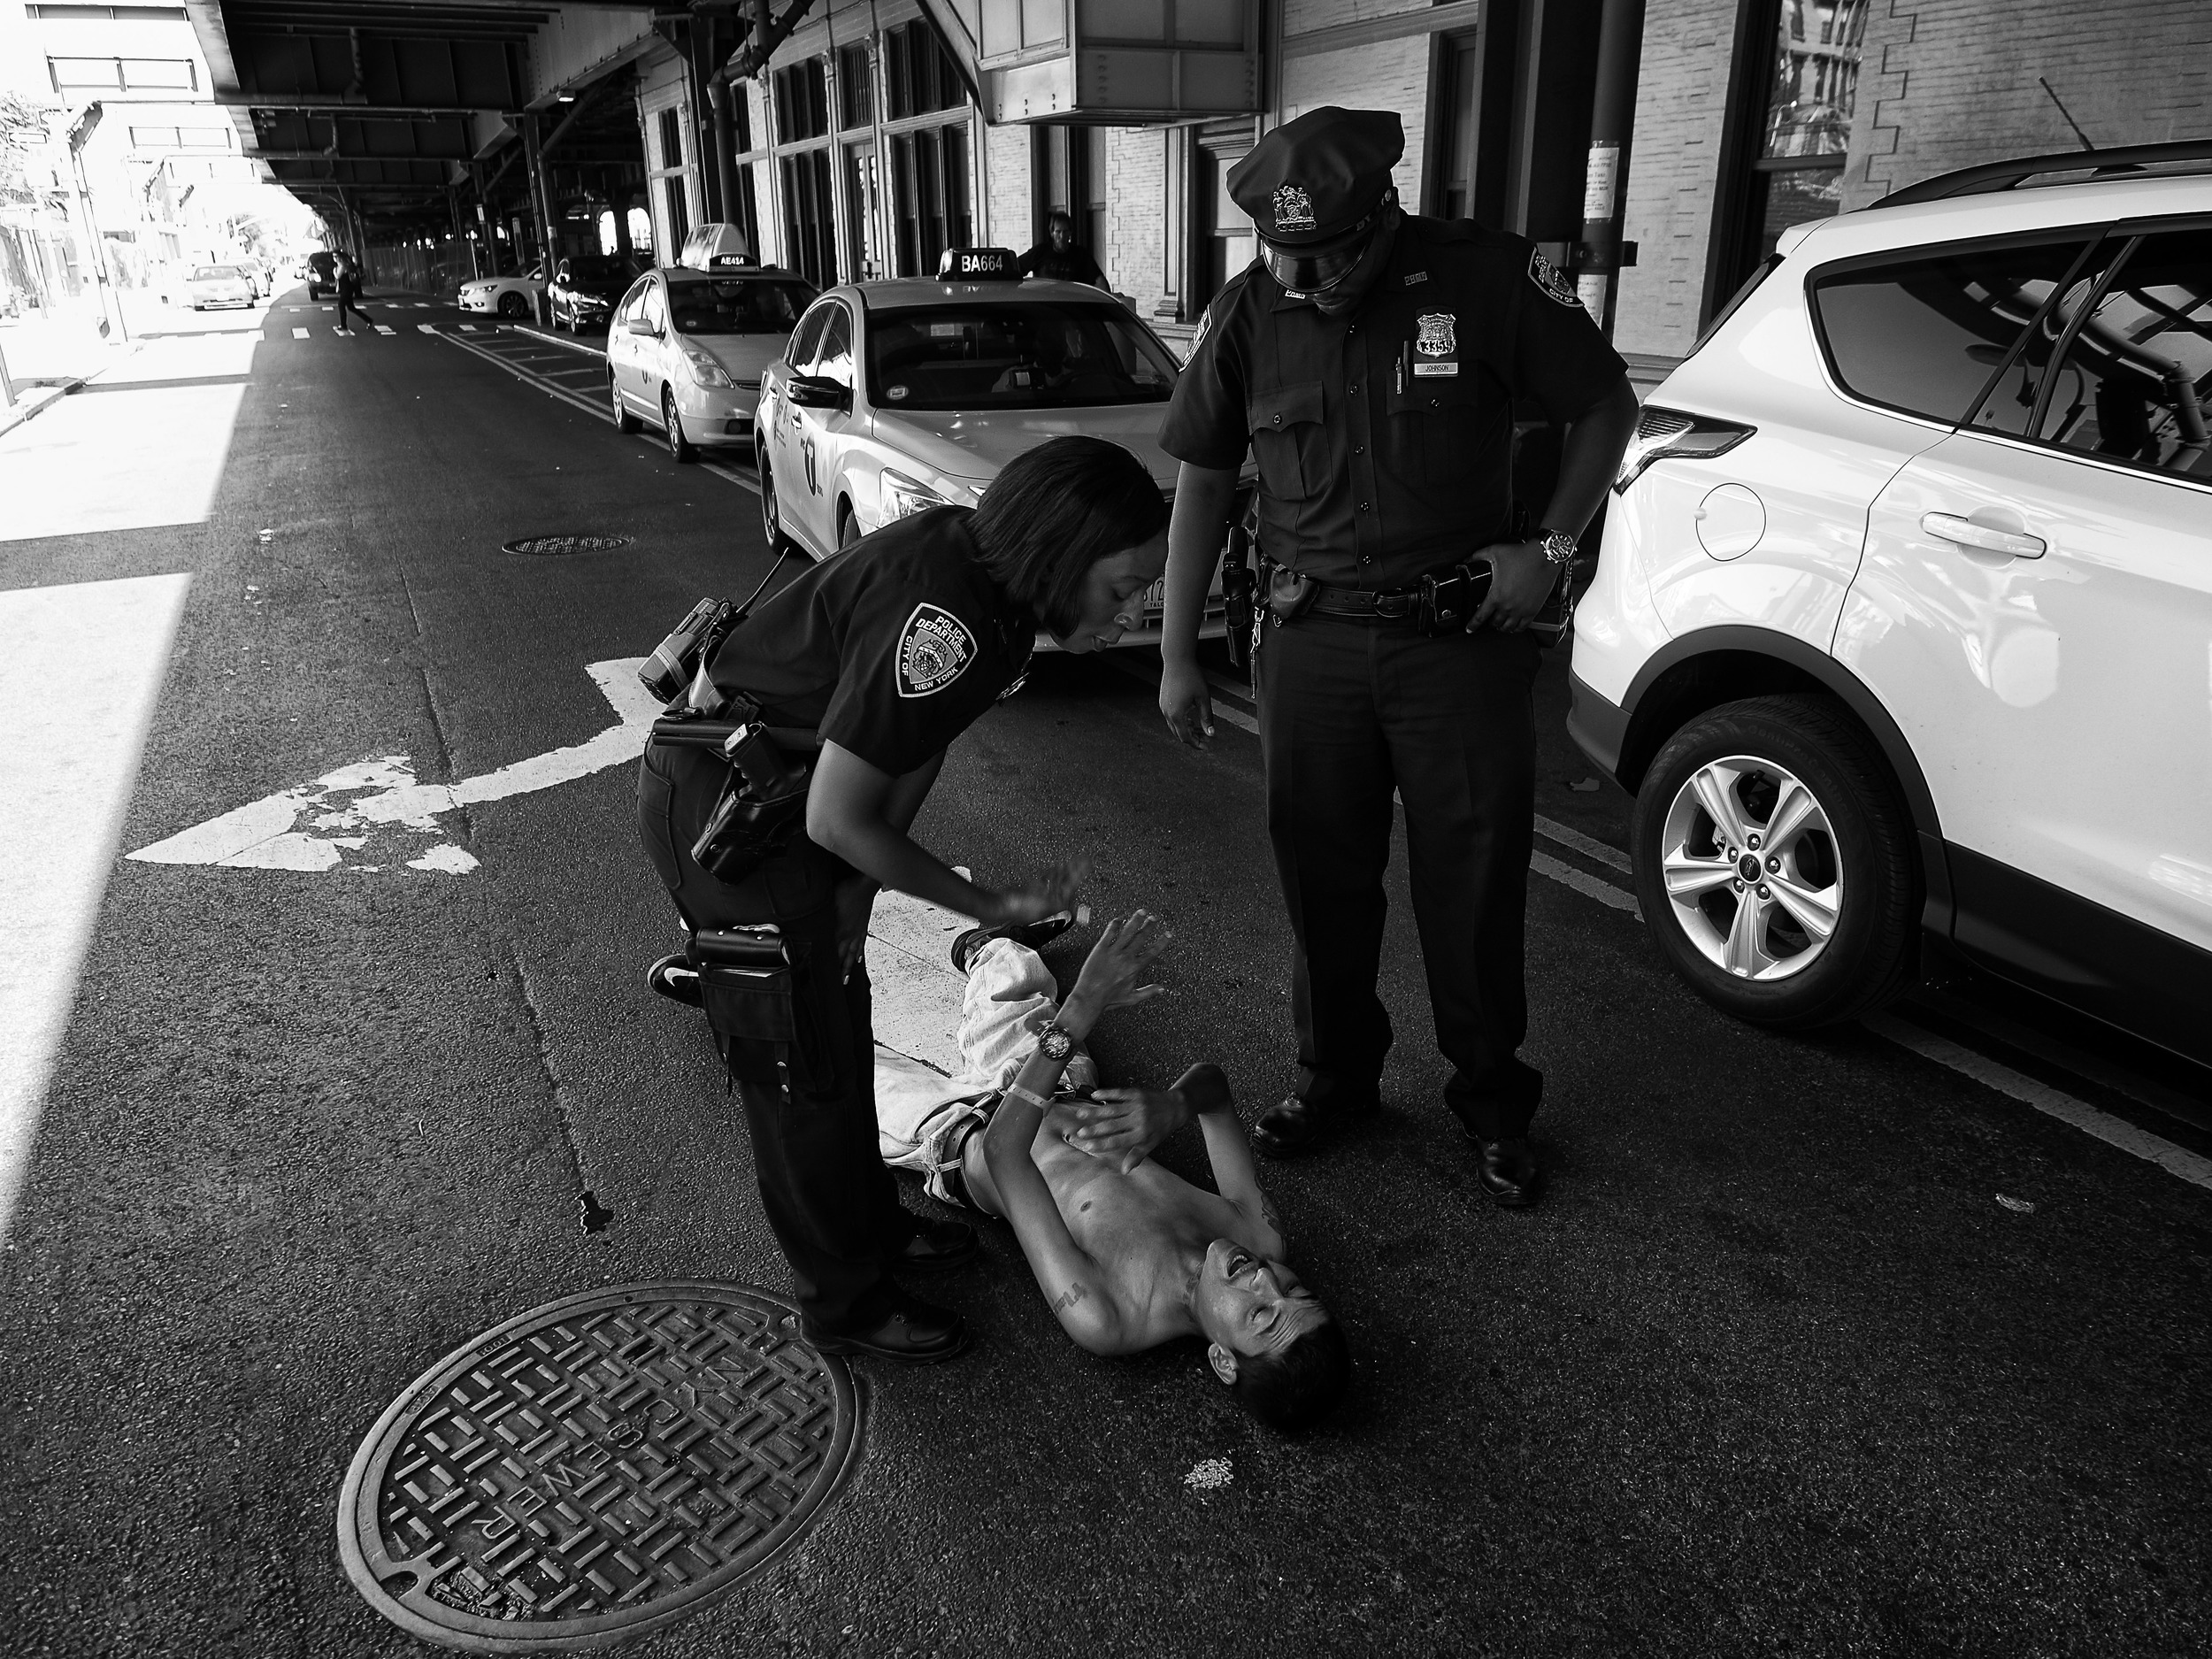 New York Police Department officers attempt to move an intoxicated, homeless man off the street on Thursday, September 17, 2015 in New York, N.Y.